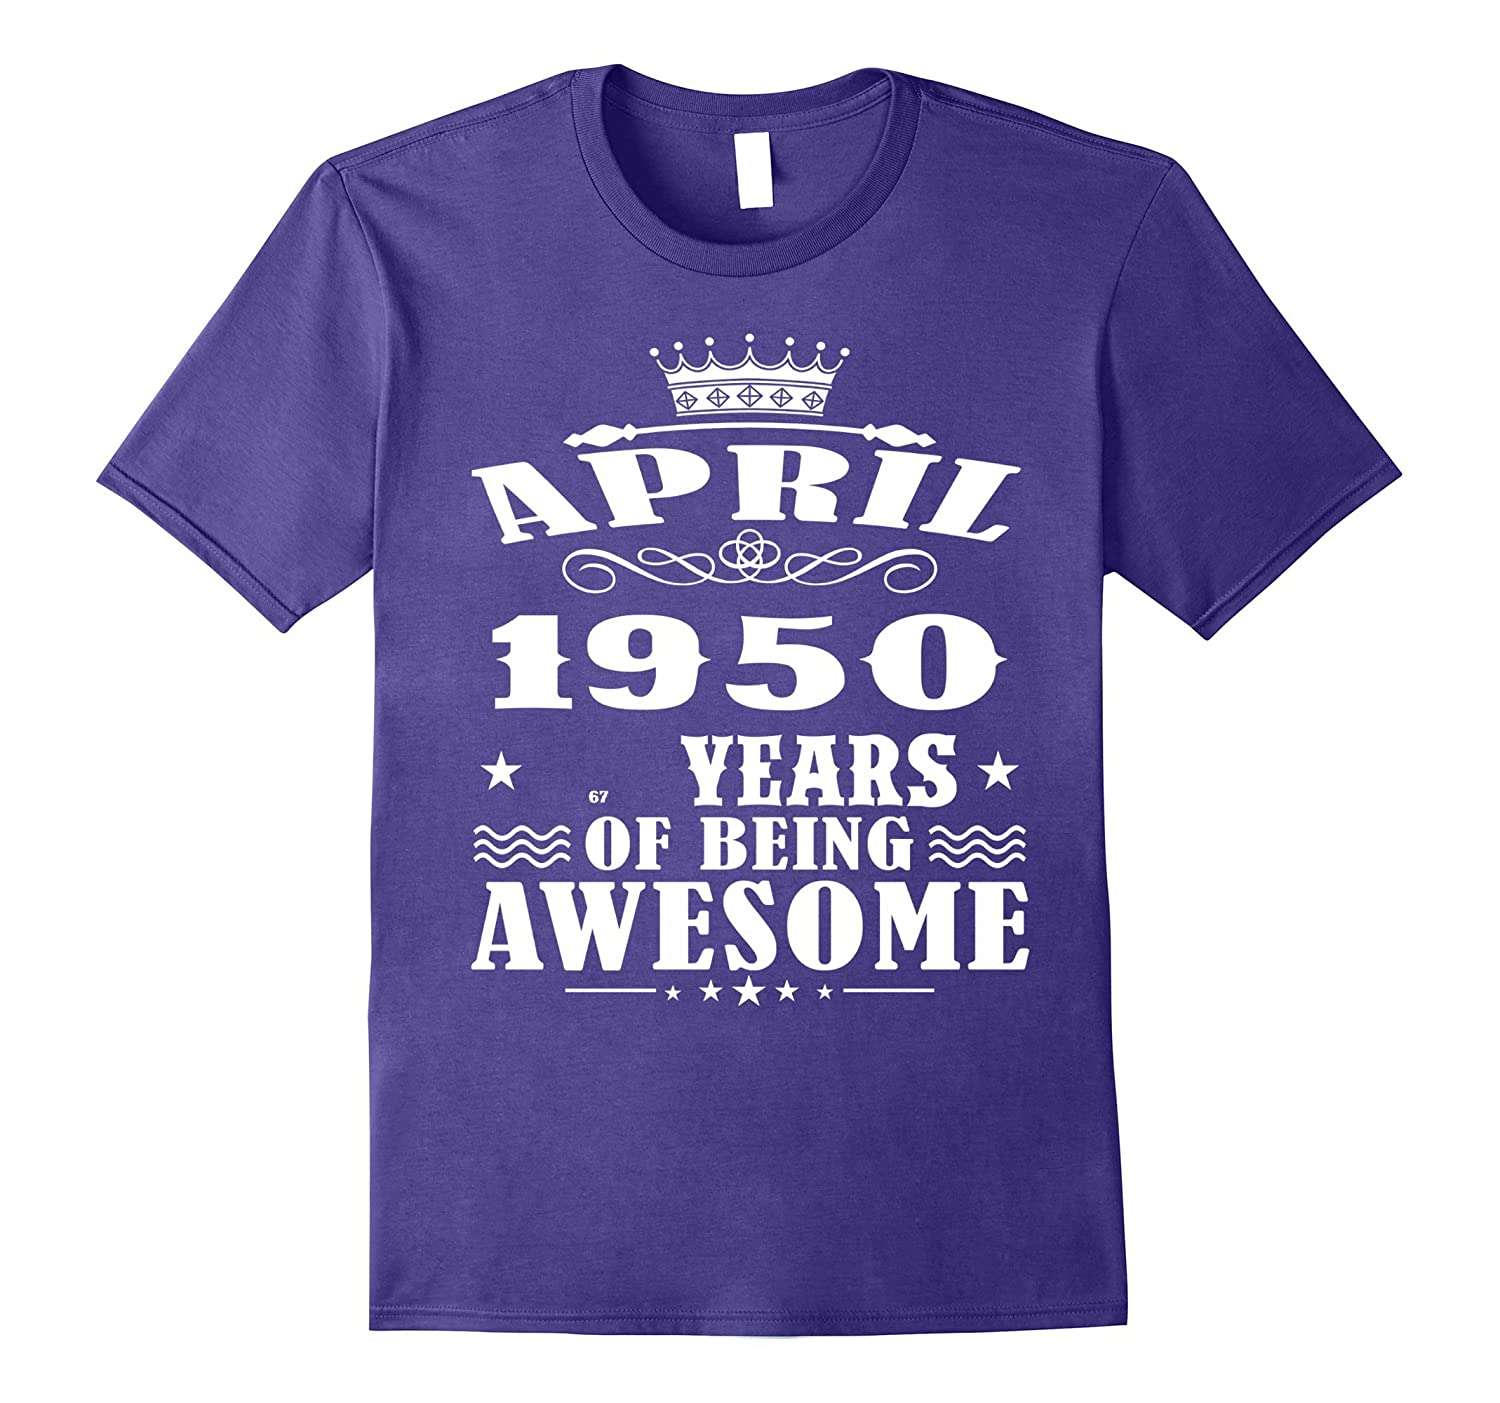 April 1950 Shirt 67 Years Of Being Awesome T- Shirt-PL